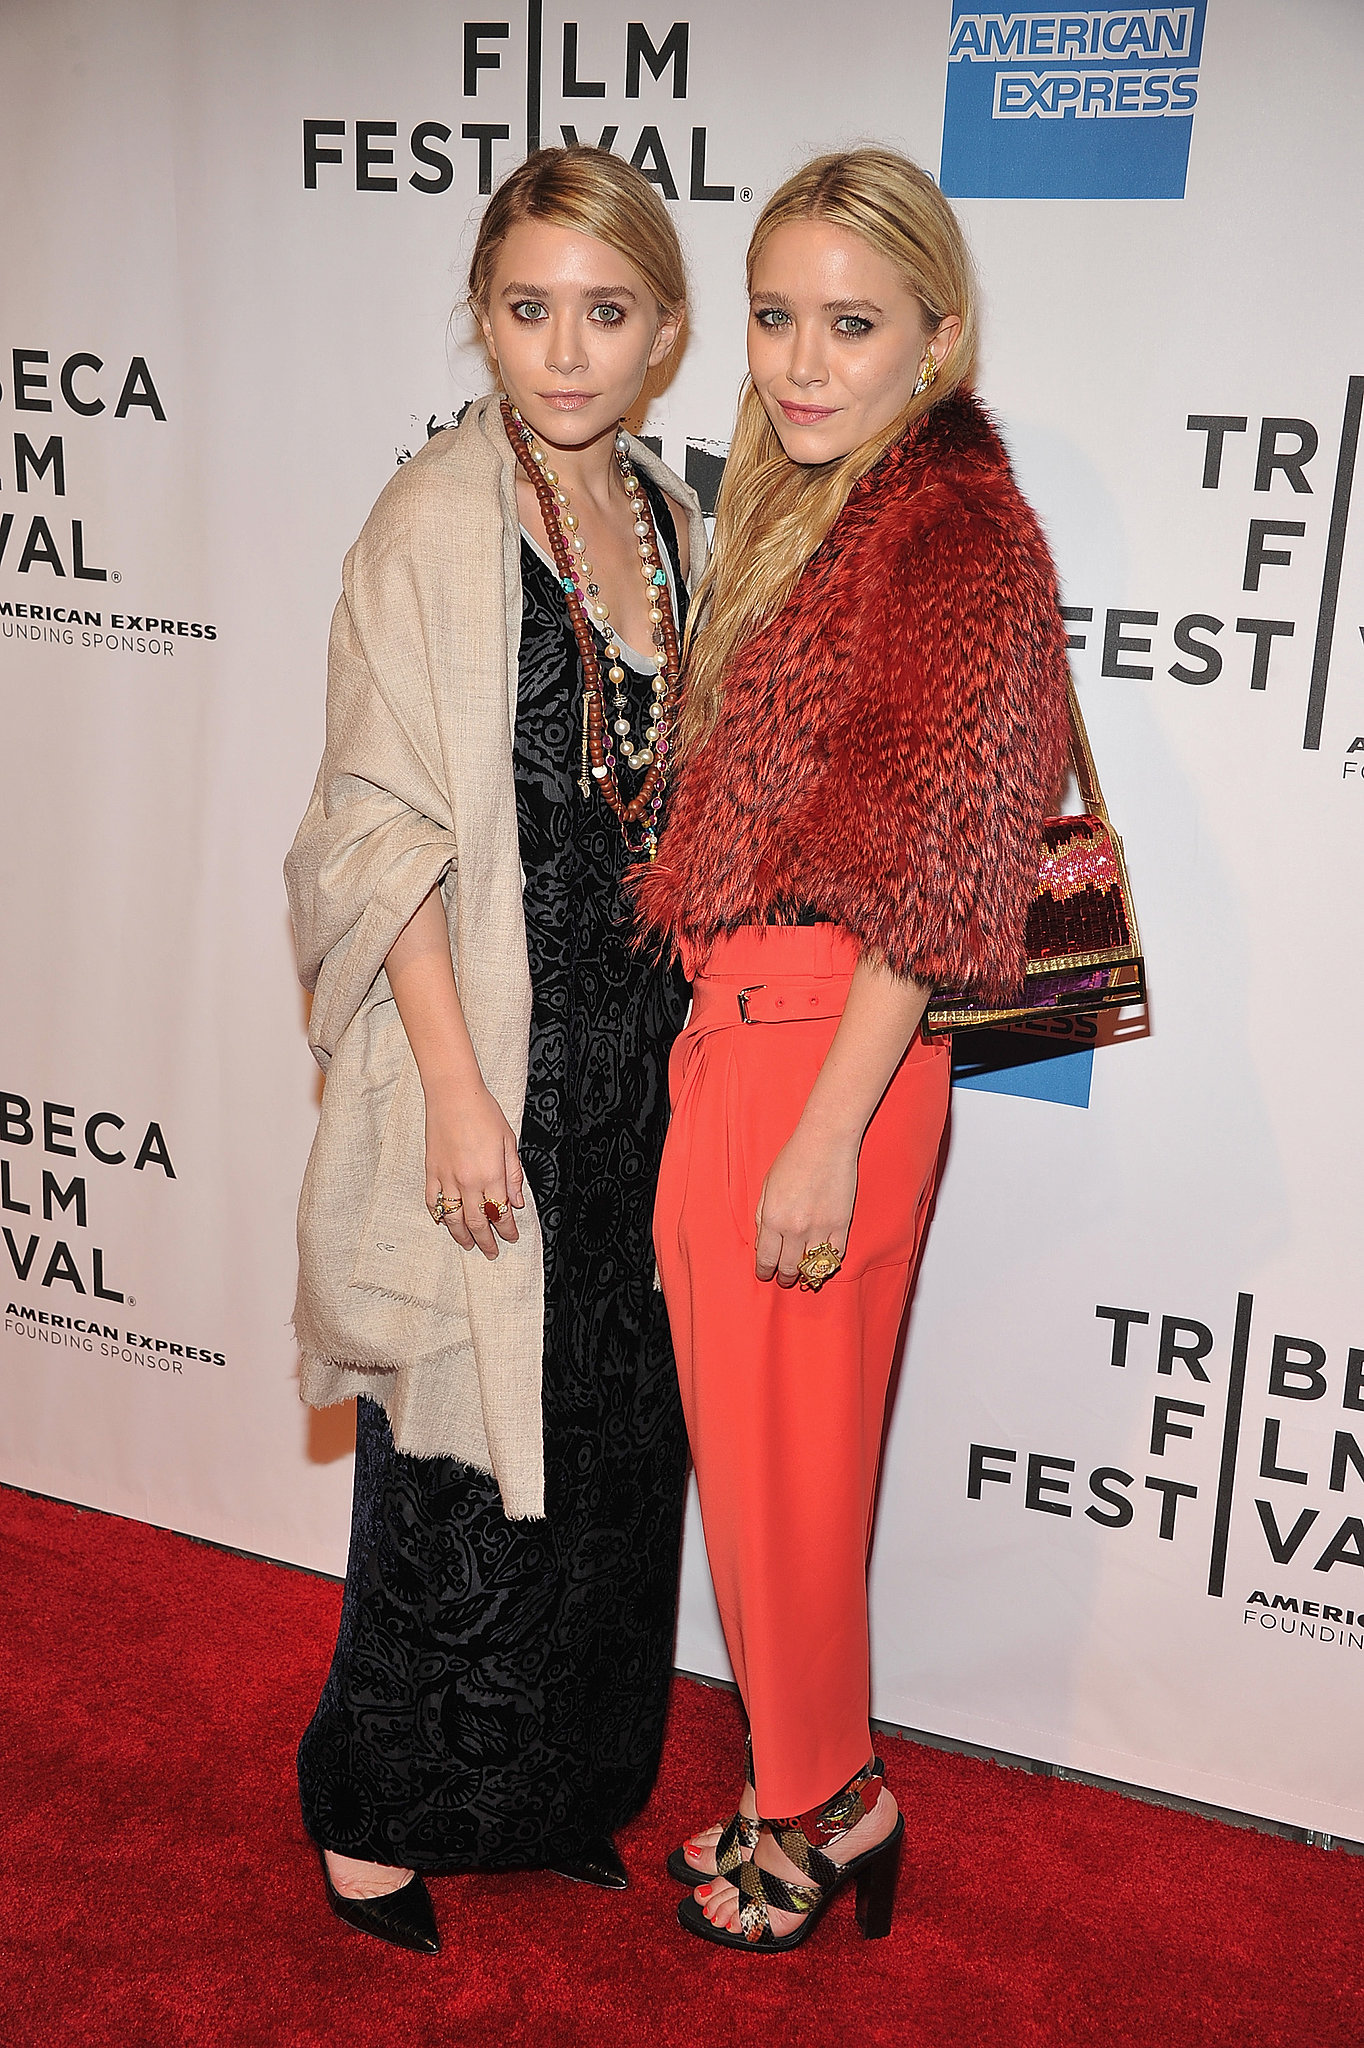 Twinning combo: Proving their expertise in mixing eclectic prints with textures, Mary-Kate and Ashley turned heads at the 2011 Tribeca Film Festival.  Ashley shrugged a burlap-hued shawl over her black-and-silver brocade maxi, then tossed on an array of boho-chic necklaces and rings. Mary-Kate's love of fur extended with a cropped orange-and-red creation, coordinating trousers, and python sandals.